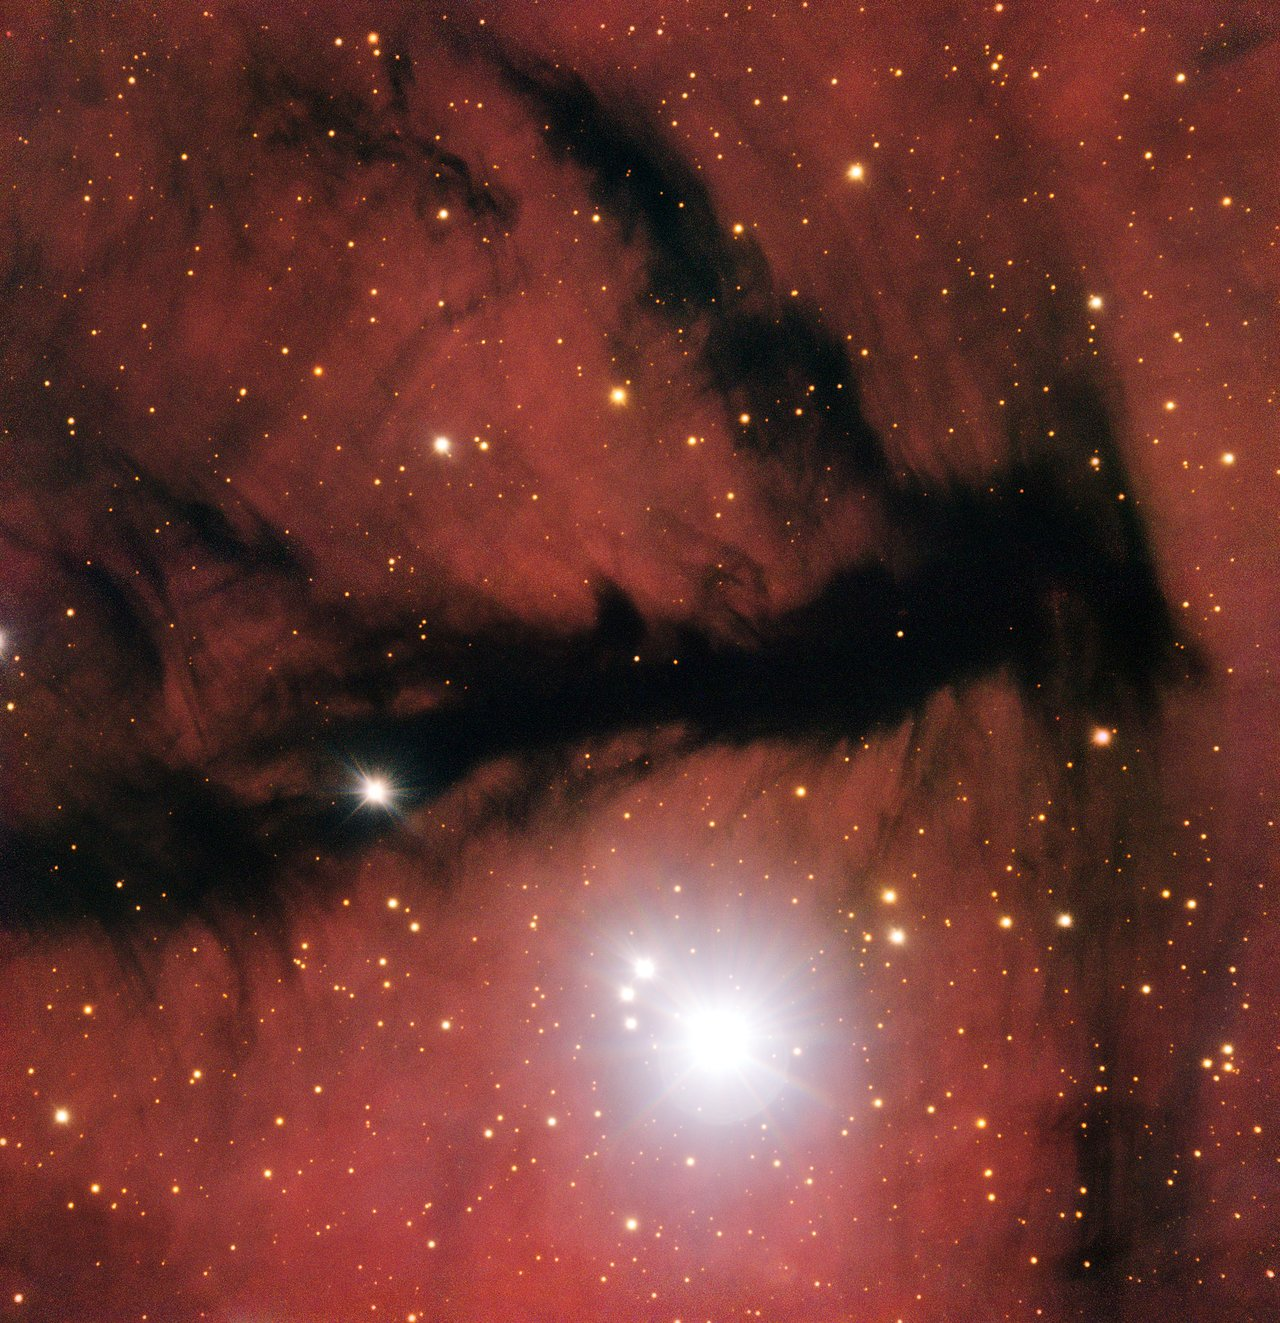 Space images thread.